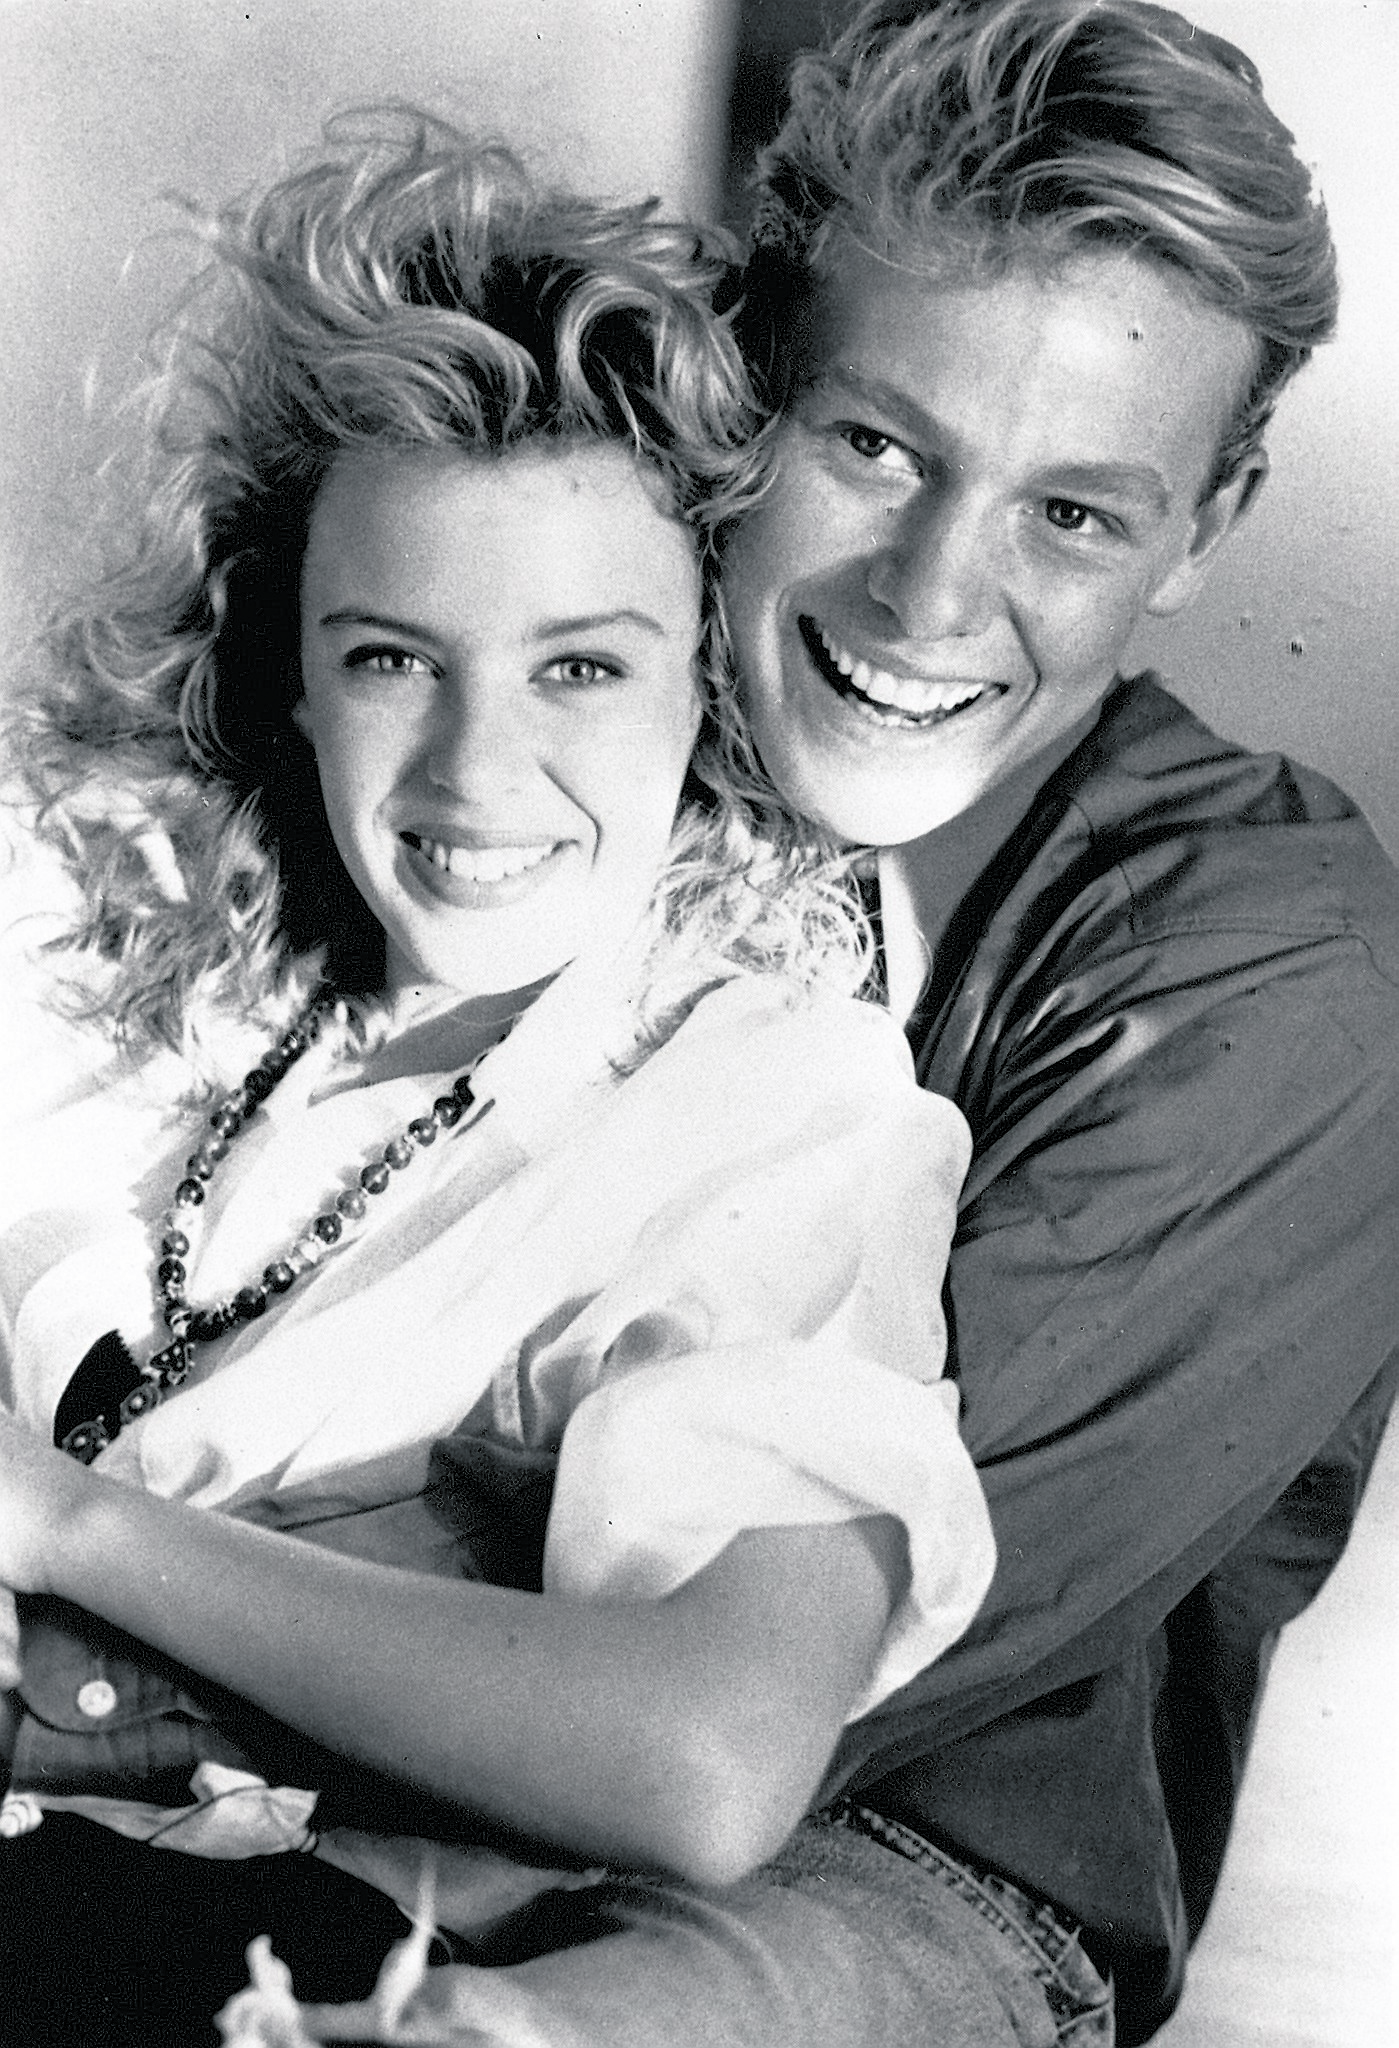 Jason Donovan with Kylie Minogue back in 1988